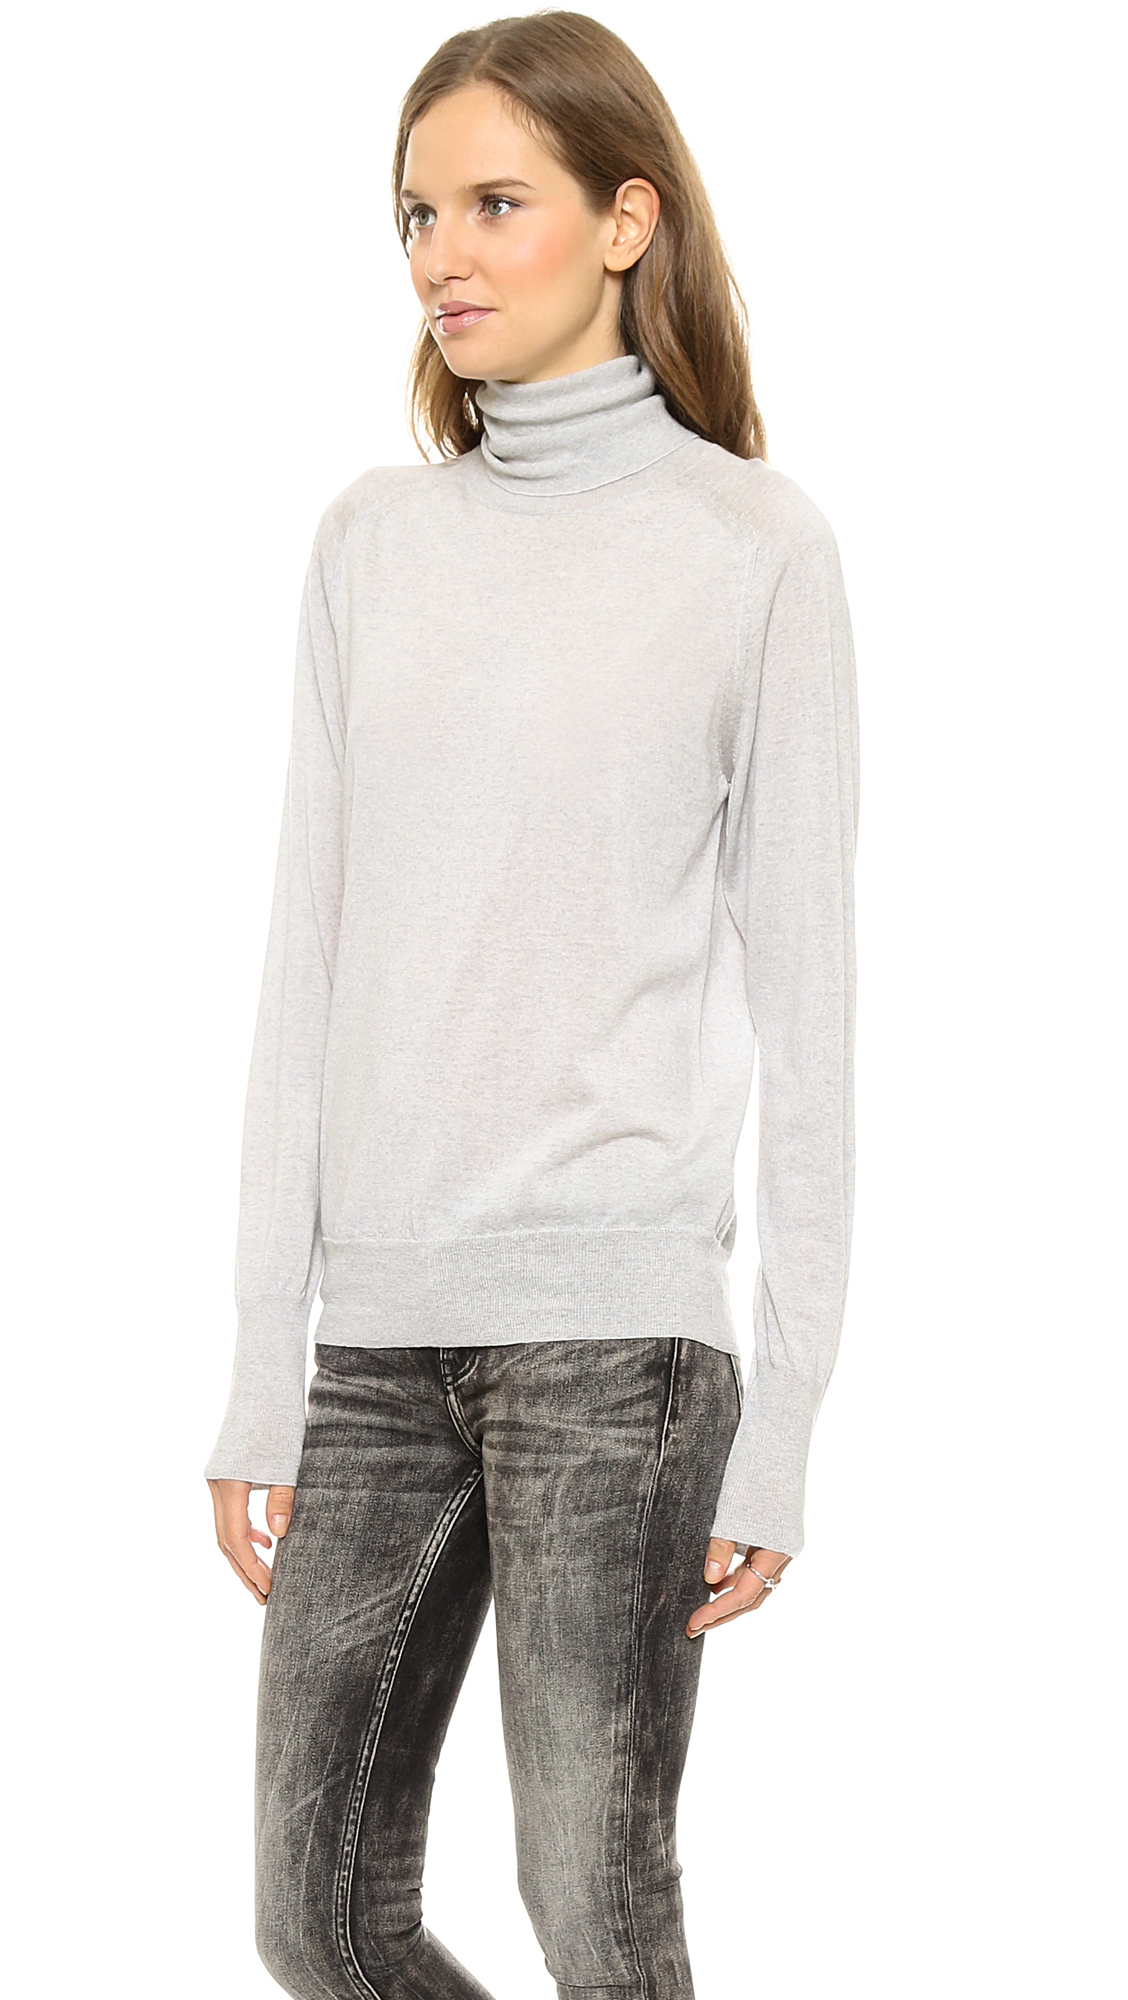 6397 Turtleneck Sweater Light Grey Heather in Gray | Lyst